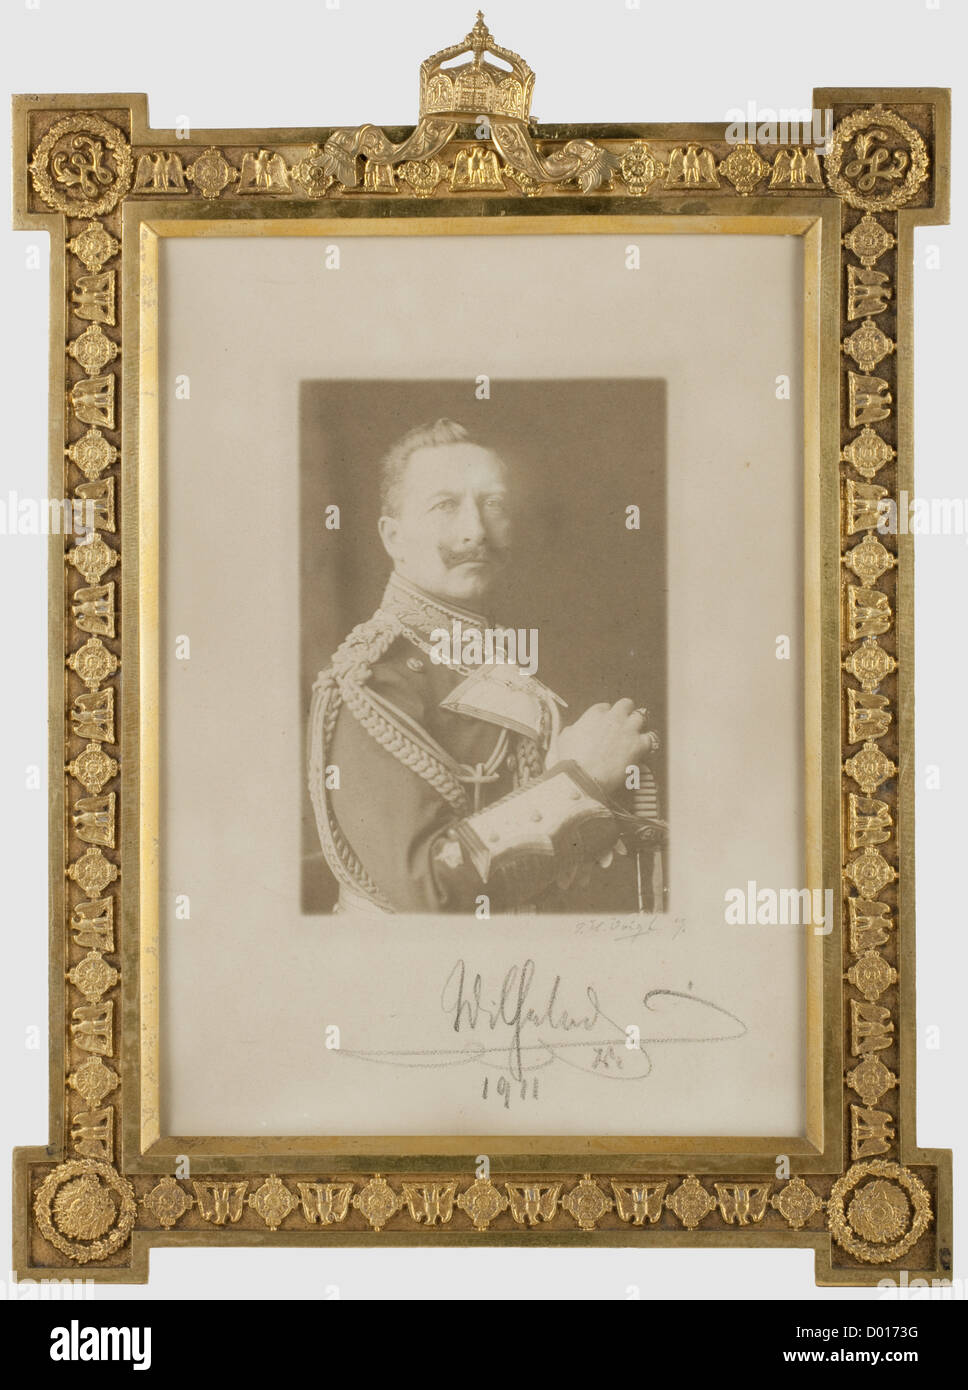 Kaiser wilhelm ii a dedication picture frame gilt brass frame kaiser wilhelm ii a dedication picture frame gilt brass frame with surrounding collar of the order of the black eagle in reli jeuxipadfo Images